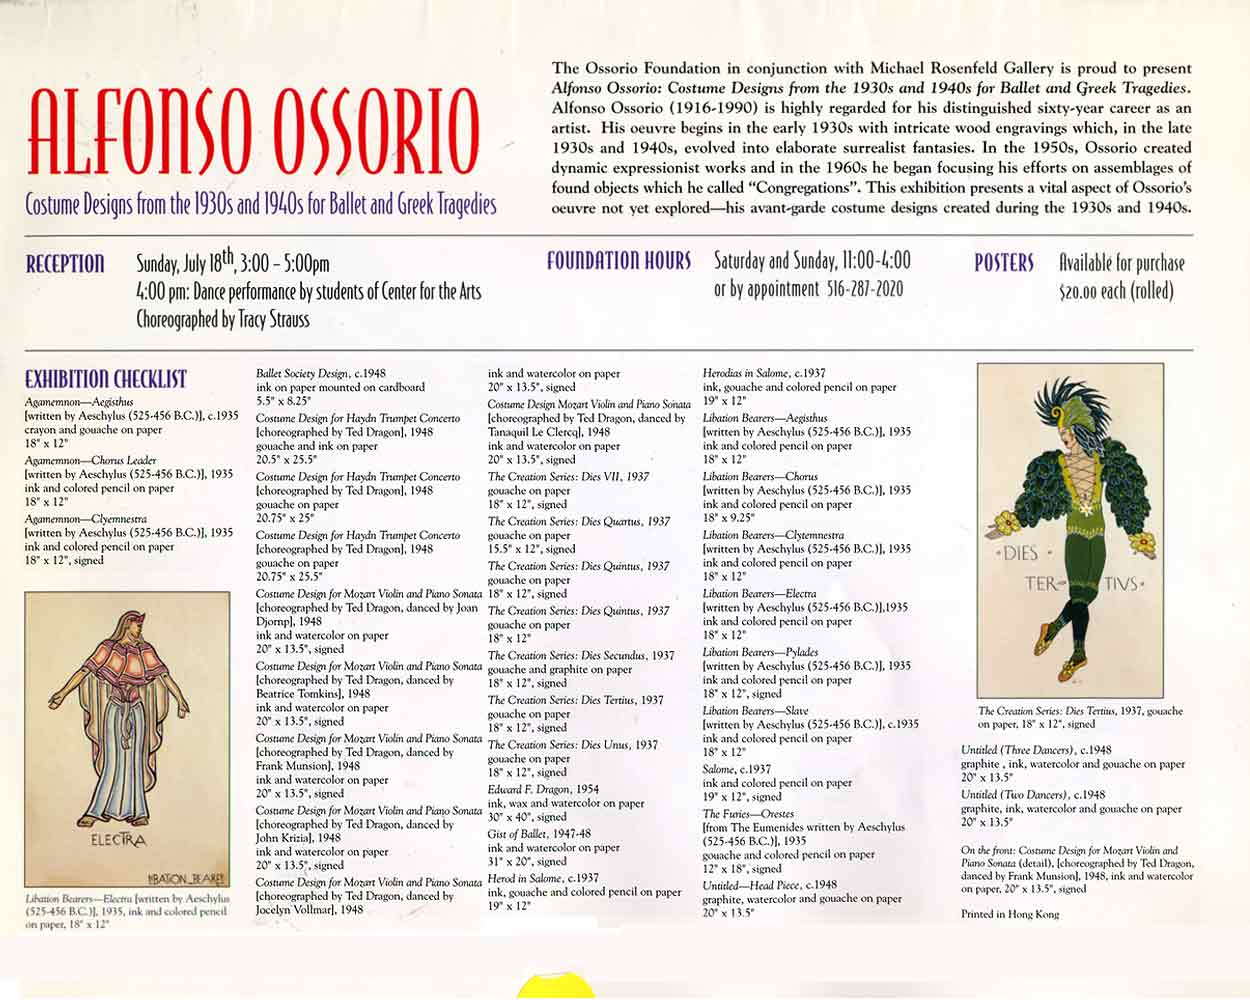 Alfonso Ossorio: Costume Designs, flyer, pg 1